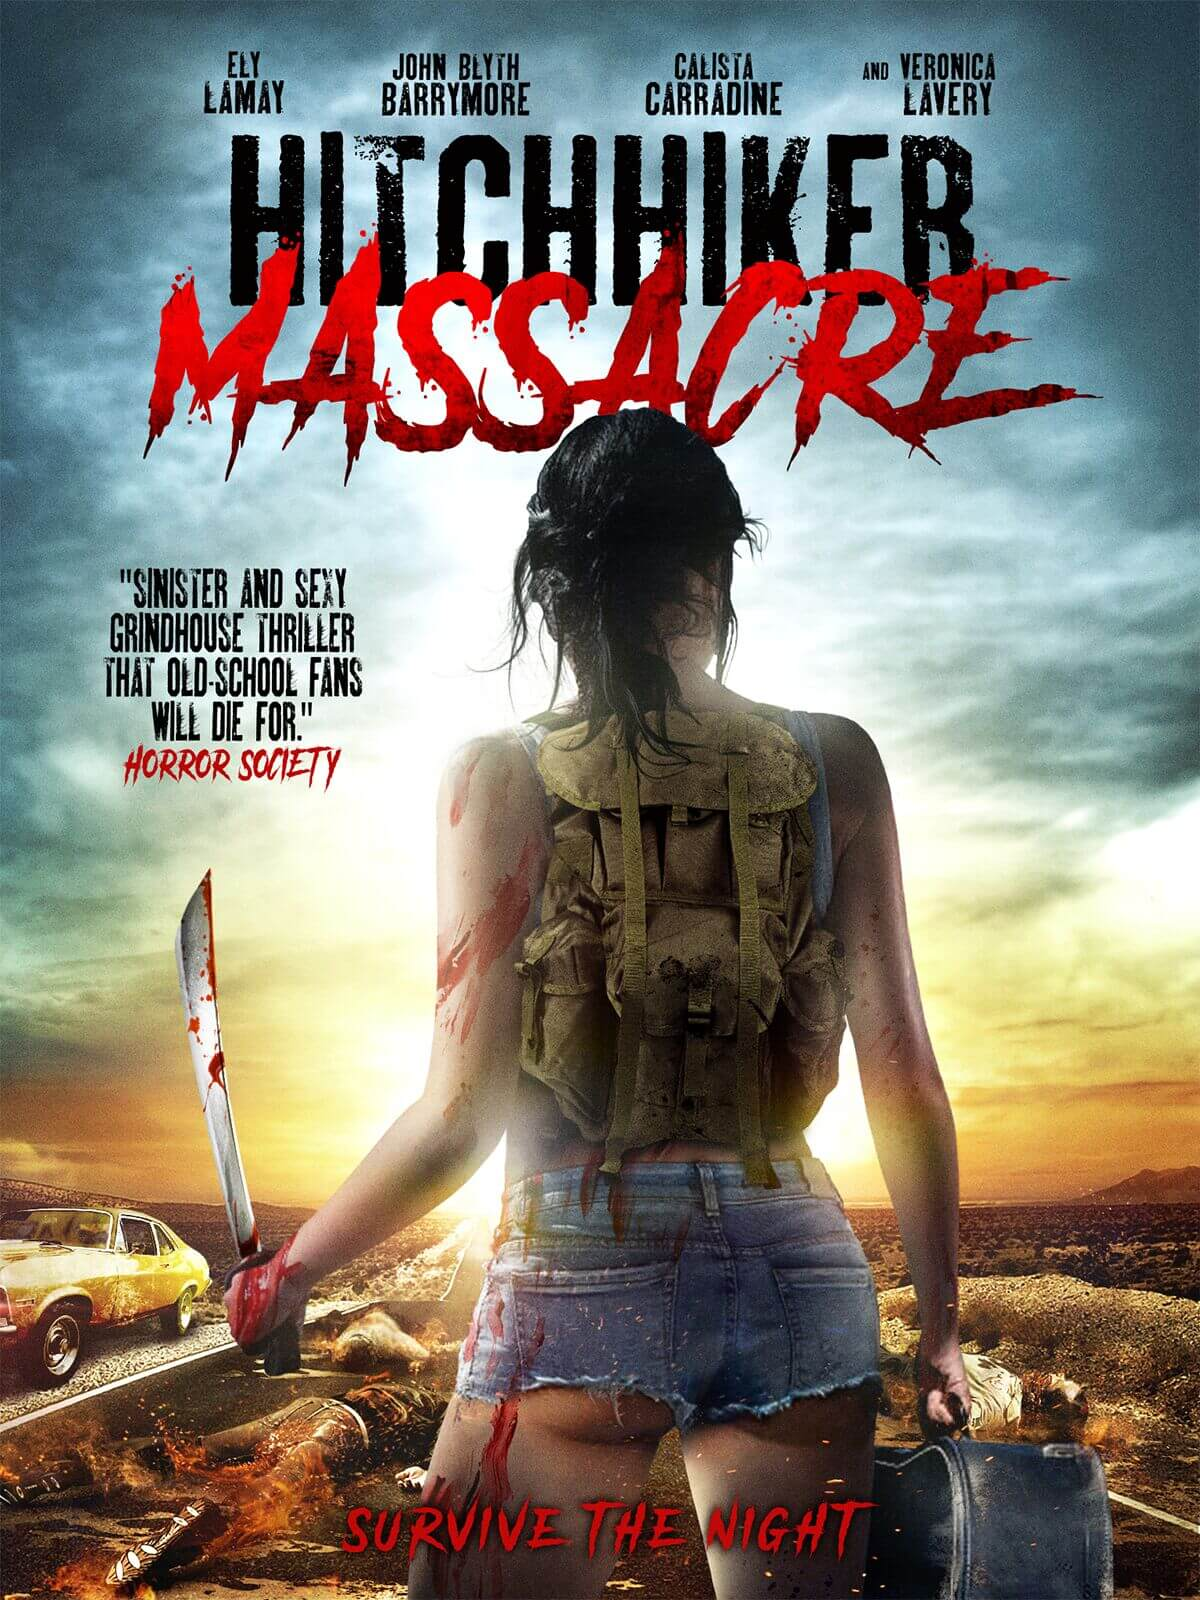 Hitchhiker Massacre 1200x1600 HITCHHIKER MASSACRE